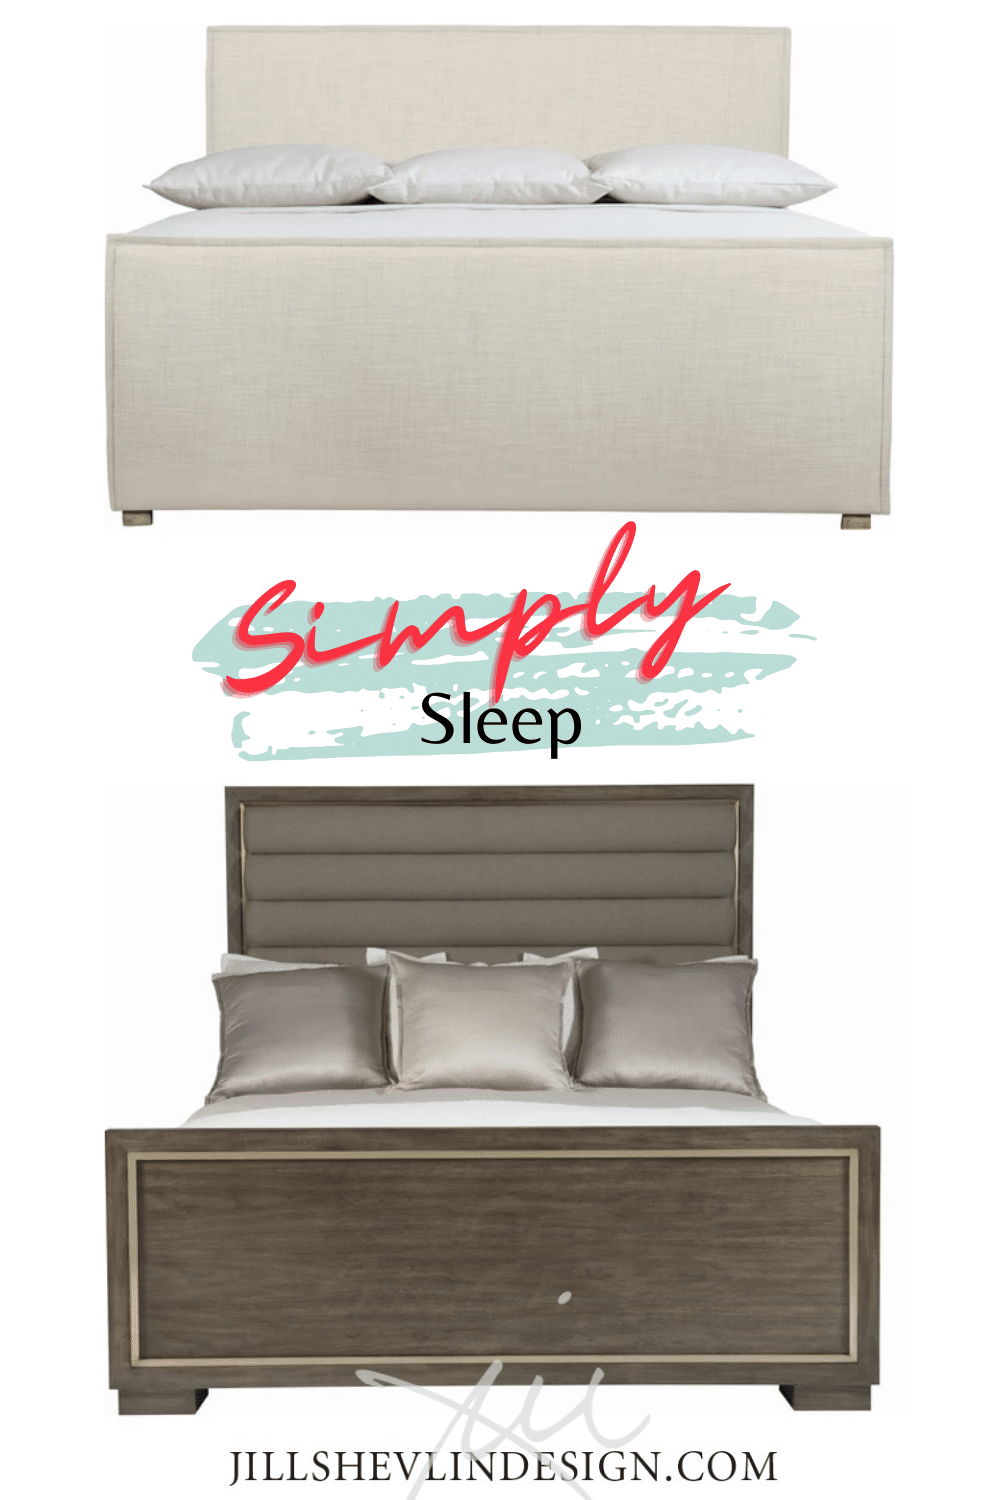 Beds Jill Shevlin Design Simple Slip covered bed WOod upholsterd bed